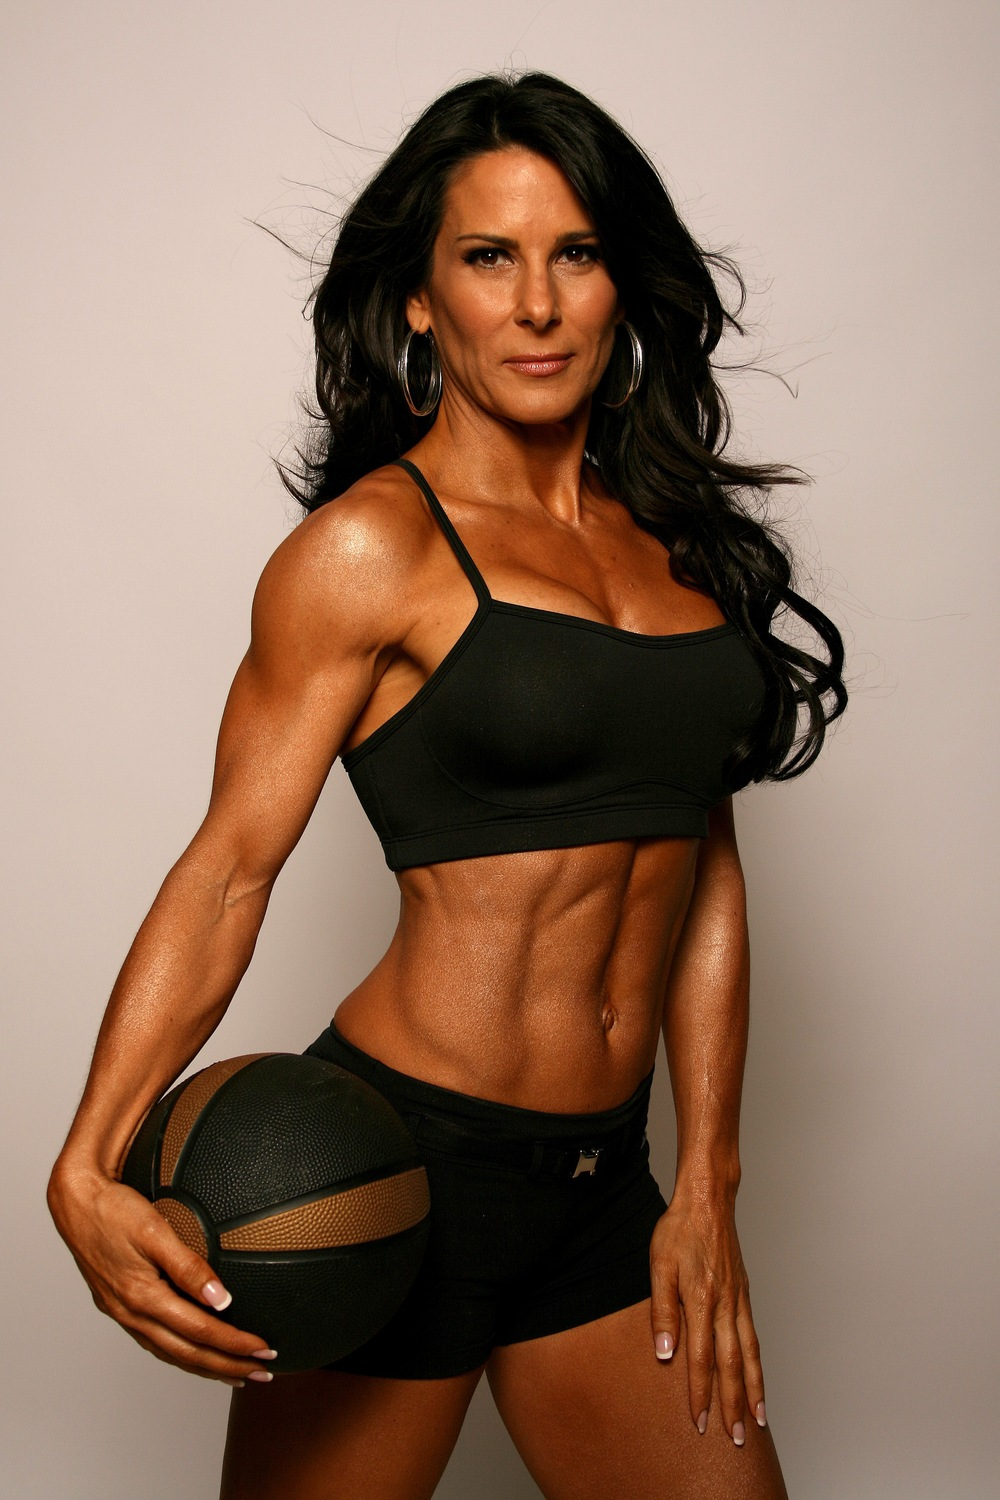 Fitness expert and figure competitor, Laura London, age 47- a mom of 3 who began weightlifting regularly in her 40s. Image:   http://www.lauralondonfitness.com/